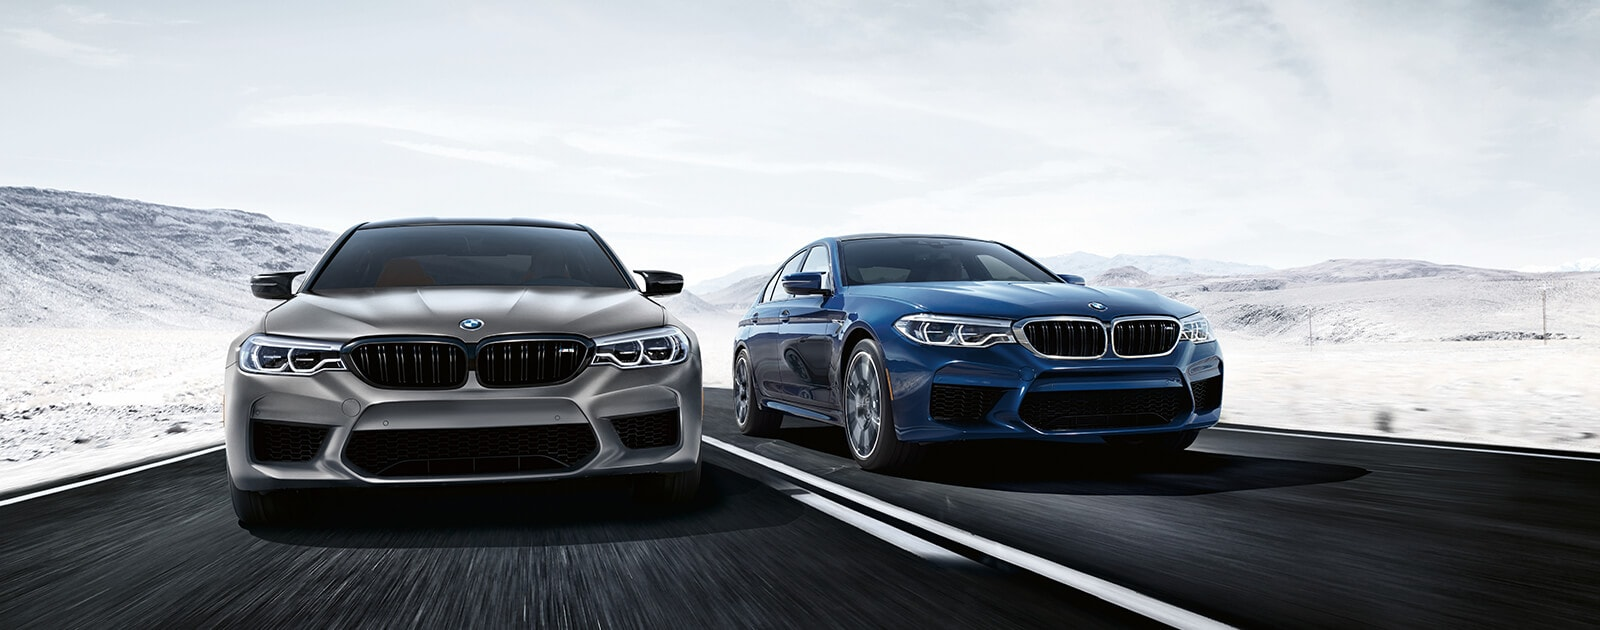 BMW M Models - BMW USA